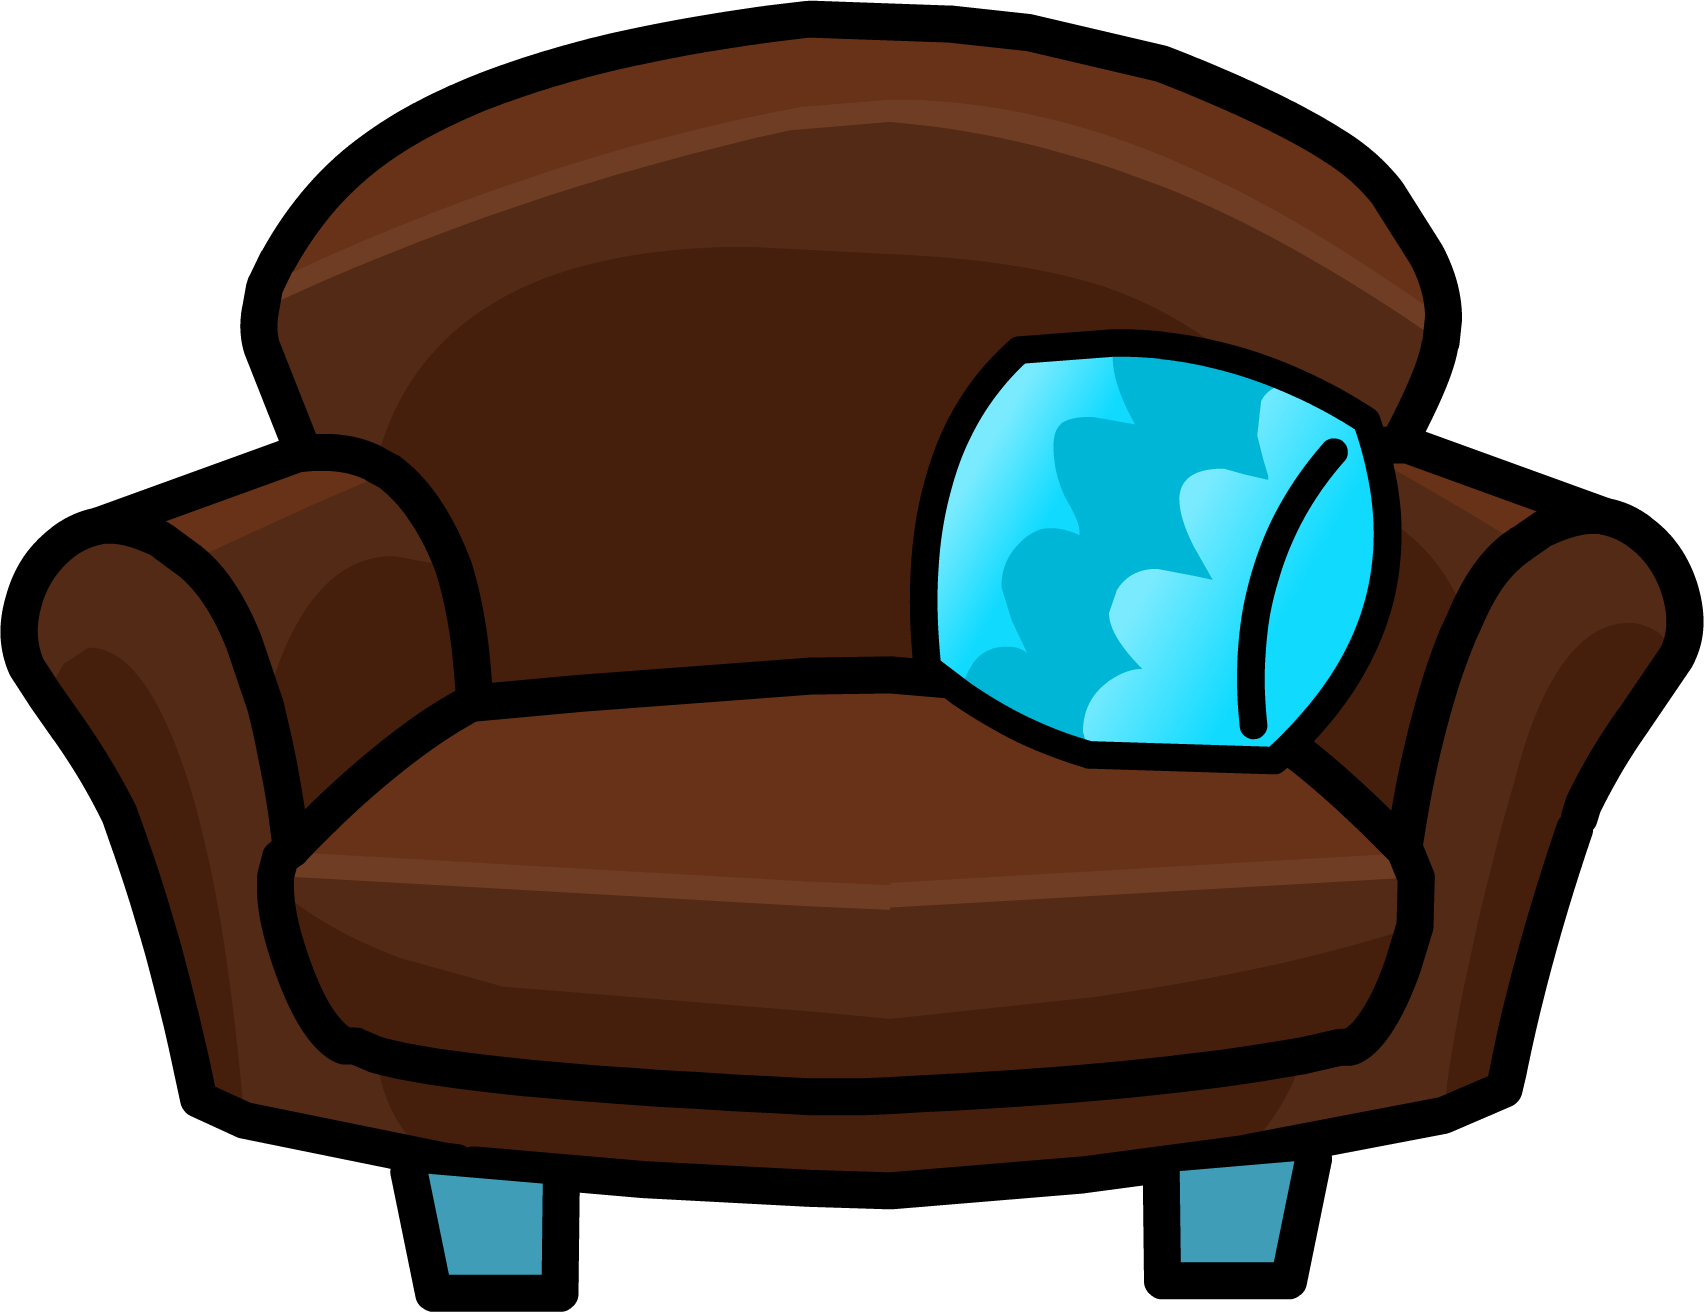 Image Sofa Png Club Penguin Wiki Fandom Powered By Wikia